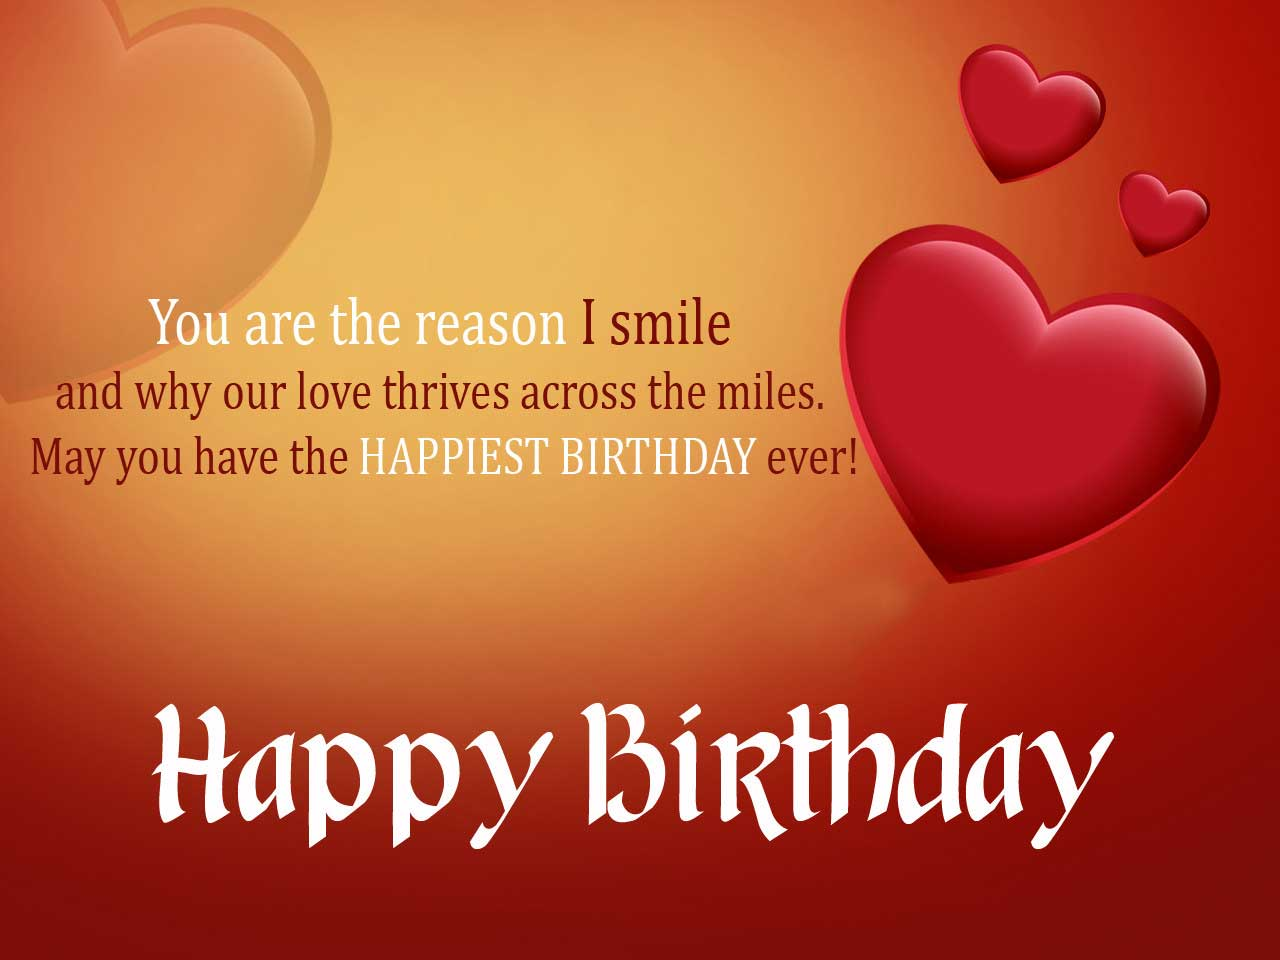 You are the reason I smile and why our love for Dashing Boyfriend birthday great wishes